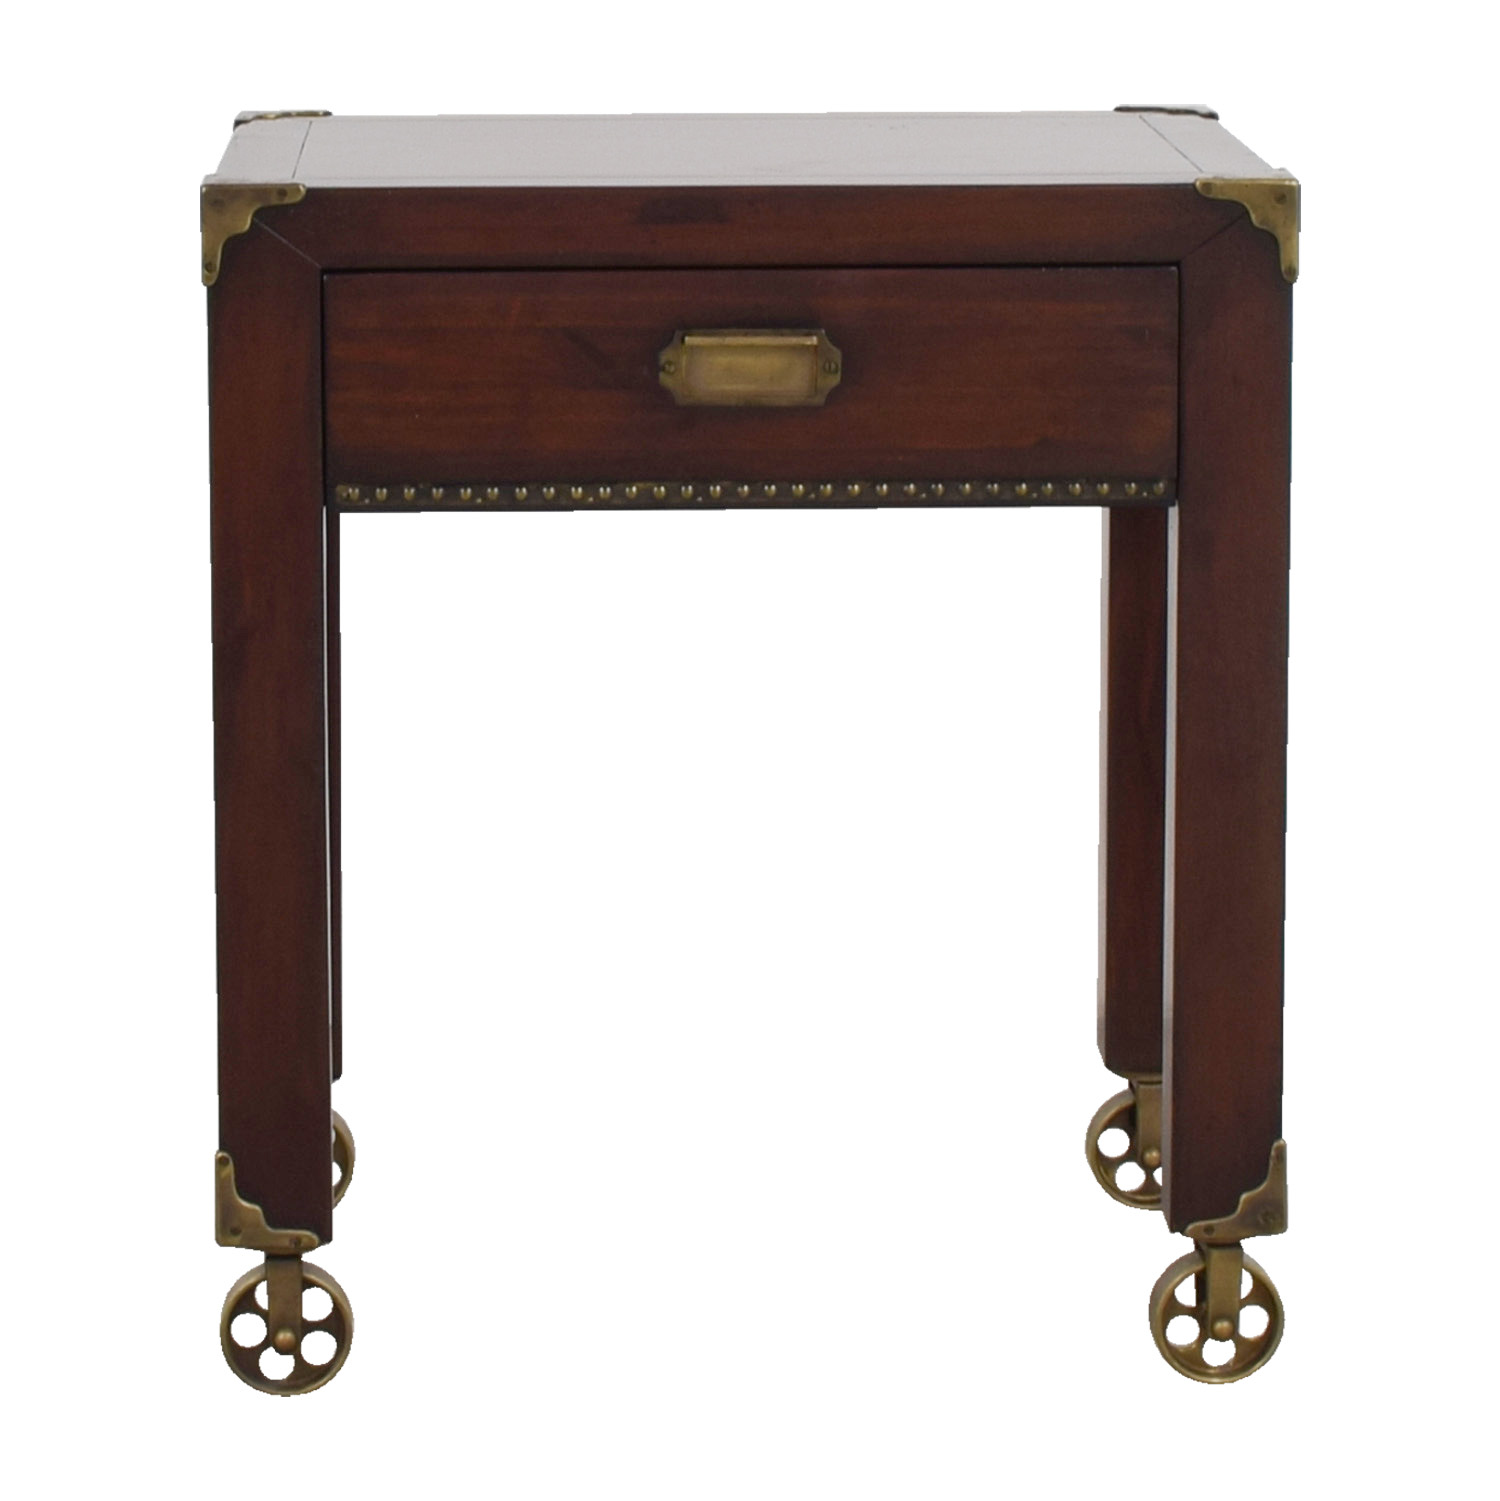 Grange Grange British Colonial Single Drawer End Table on Castors nj